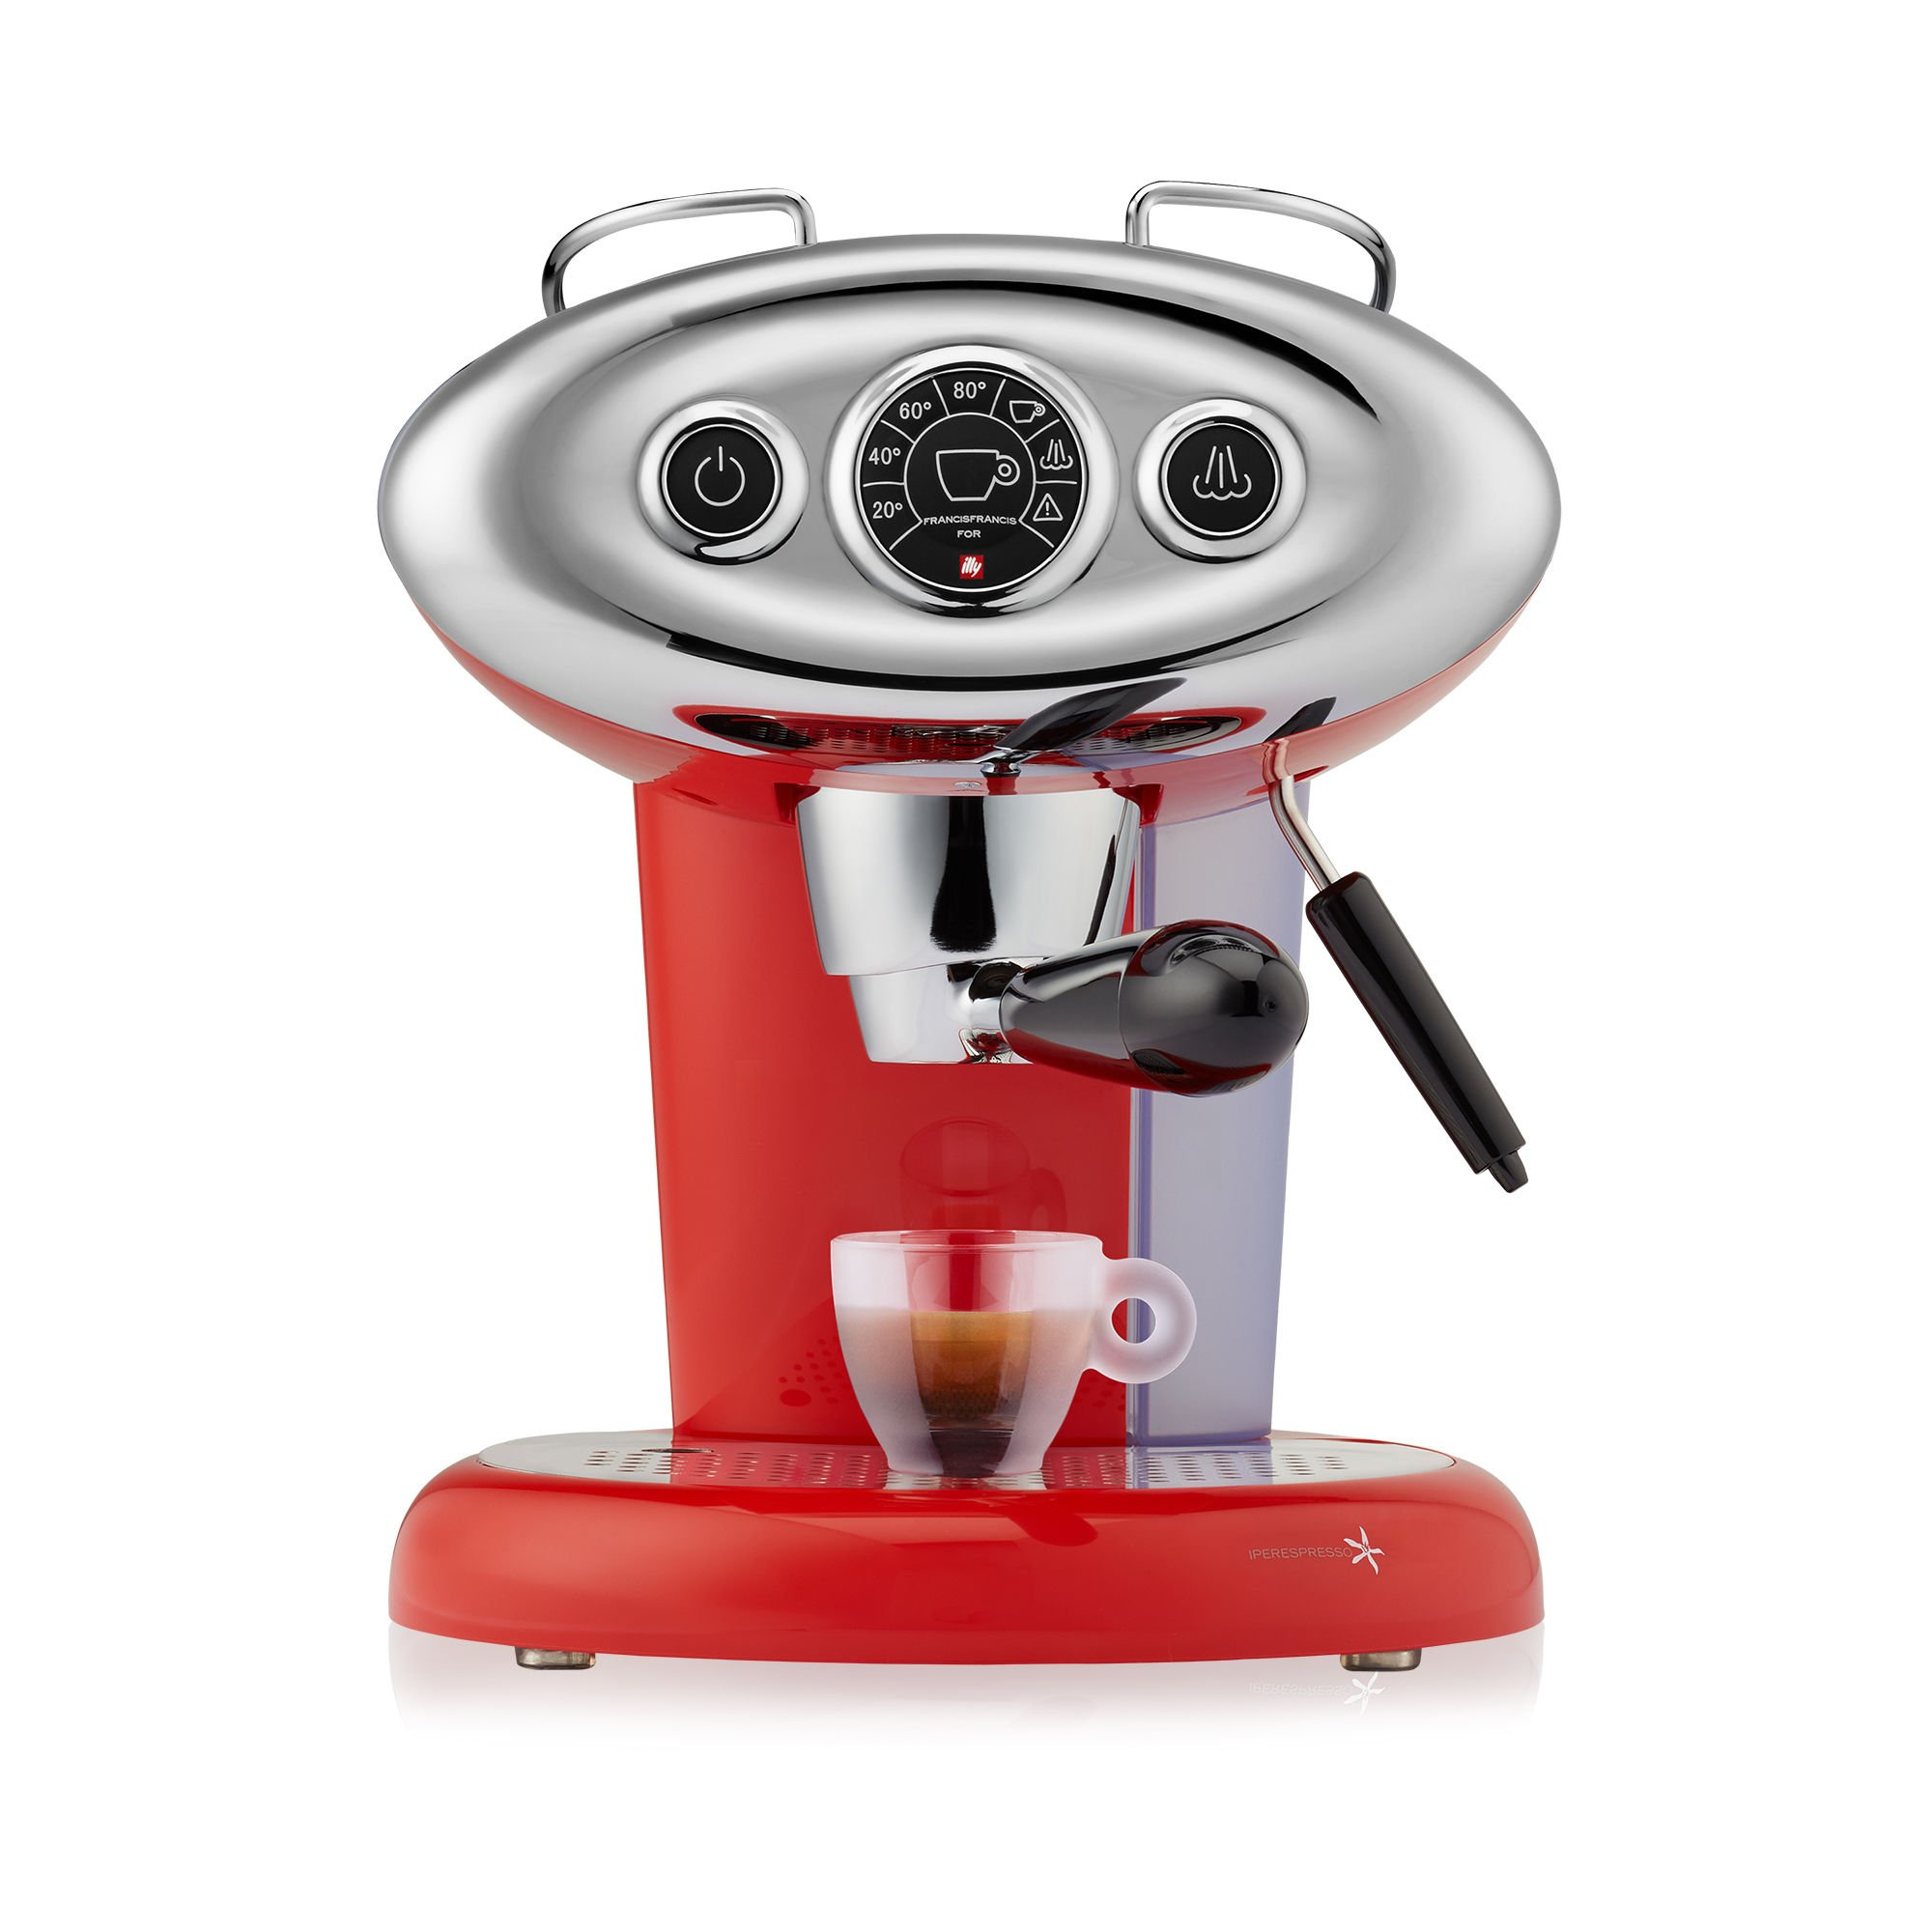 Francis Francis X7.1 Iperespresso Machine, Red by Francis Francis for illy